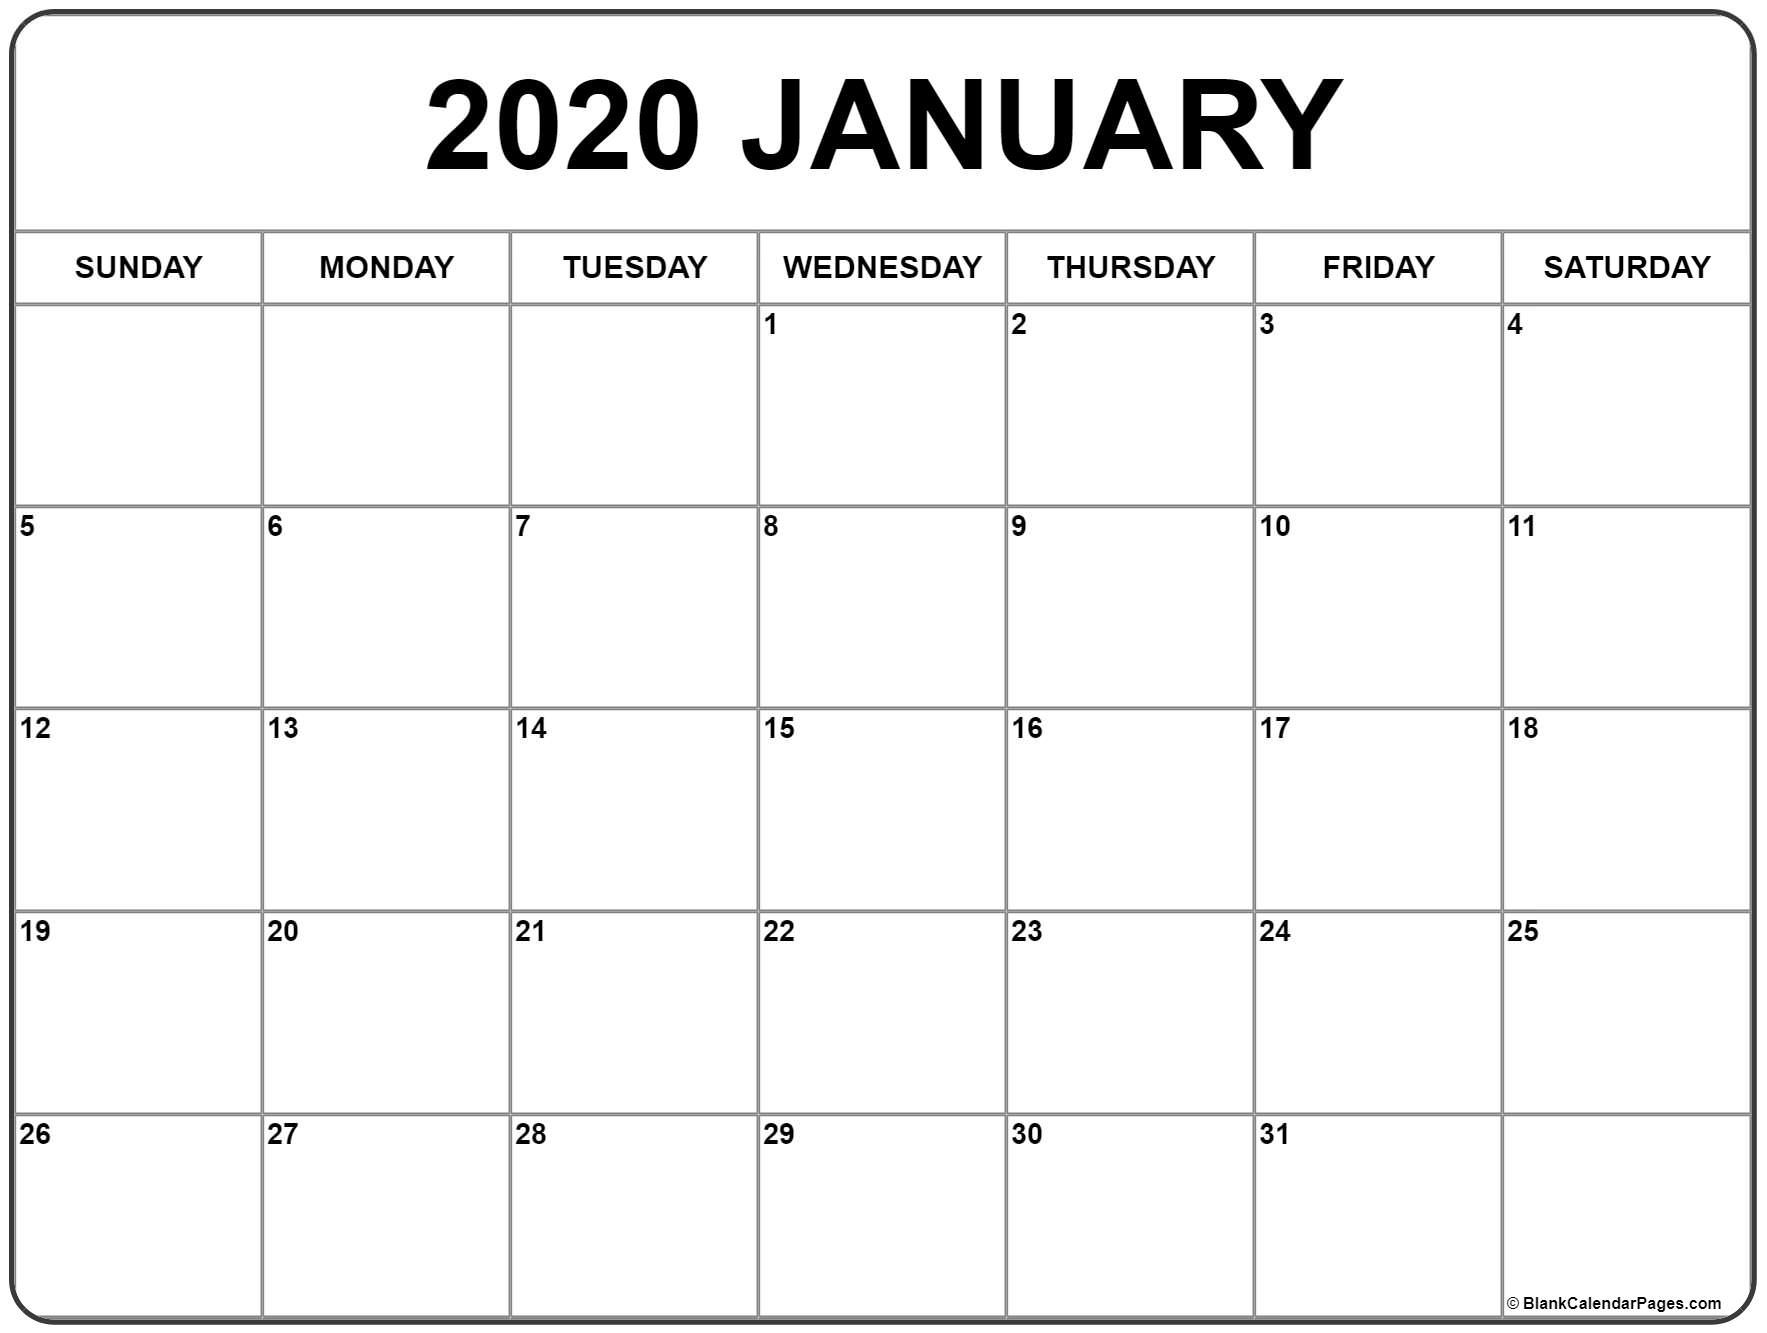 picture regarding January Printable Calender titled January 2020 calendar free of charge printable regular monthly calendars